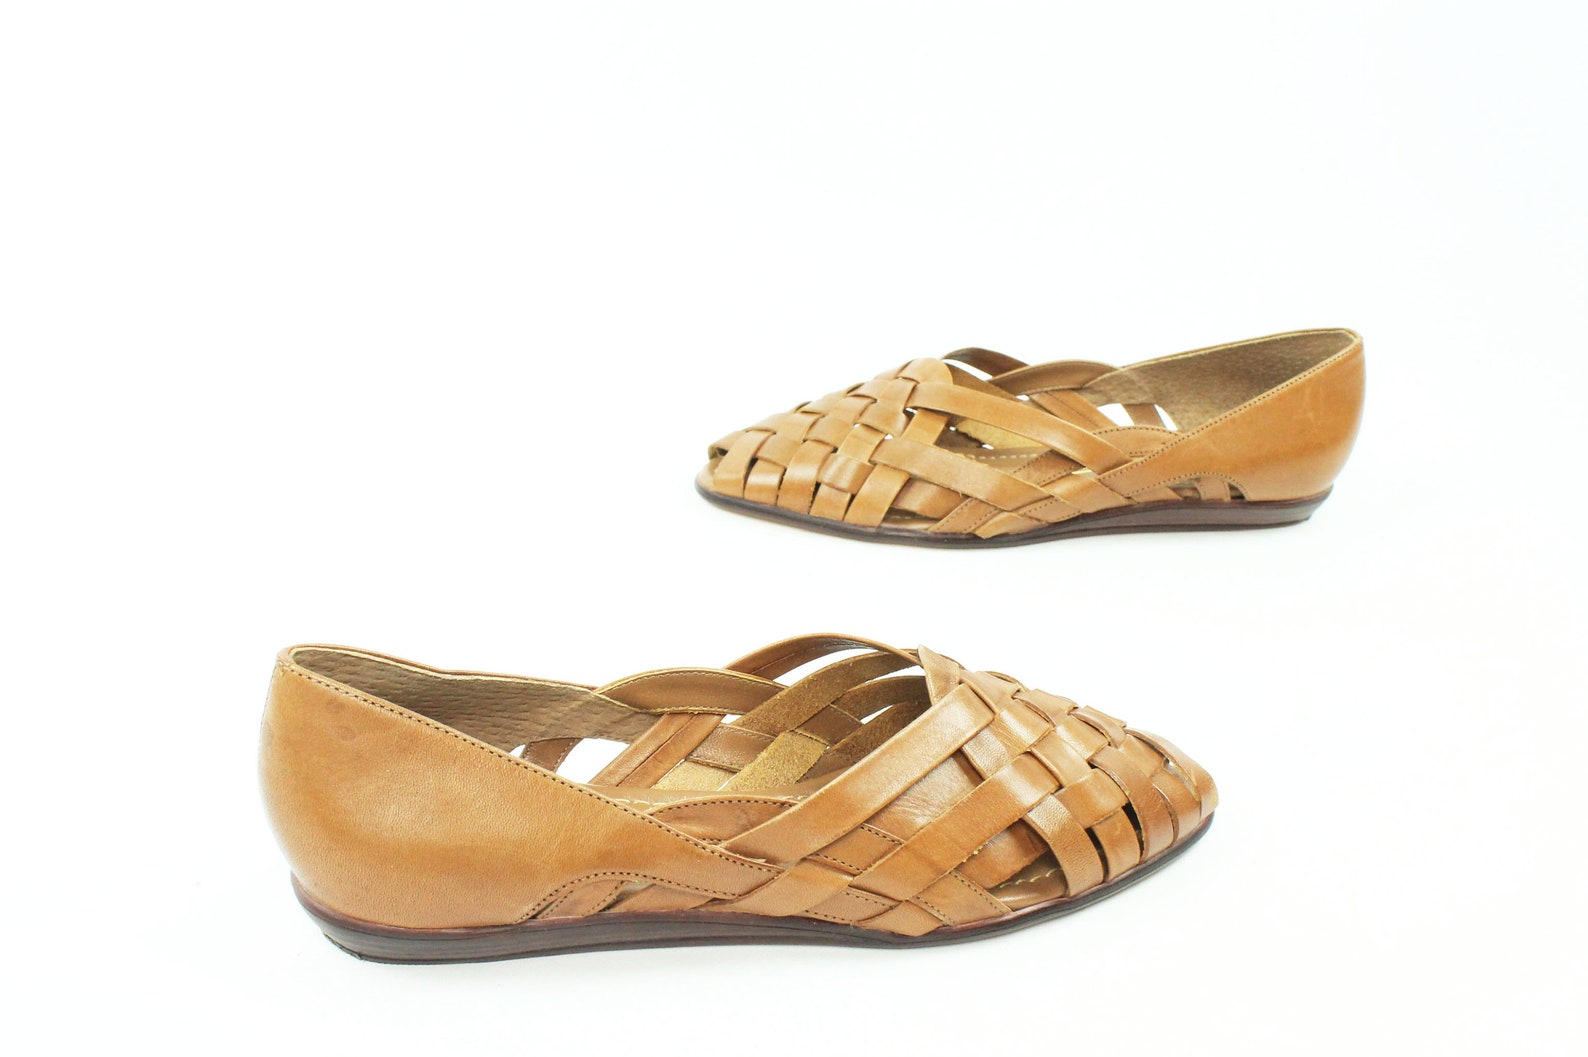 80s tan leather huarache sandals woven slip on shoes open toe ballet flats vintage 80s womens 8 1/2 wide naturalizer